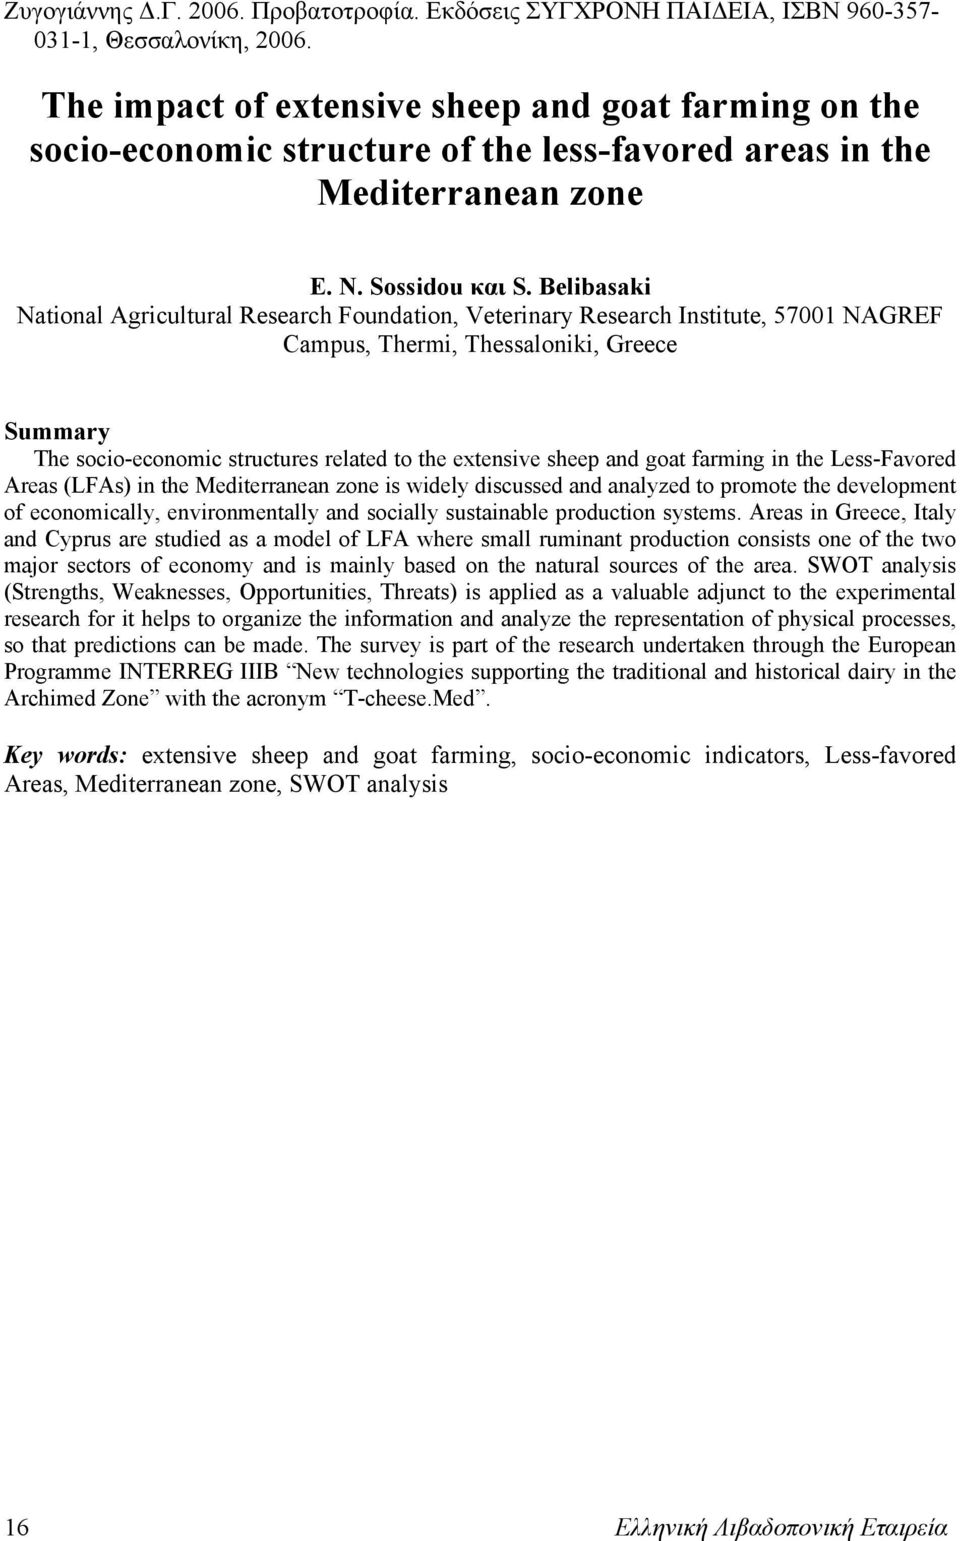 Belibasaki National Agricultural Research Foundation, Veterinary Research Institute, 57001 NAGREF Campus, Thermi, Thessaloniki, Greece Summary The socio-economic structures related to the extensive